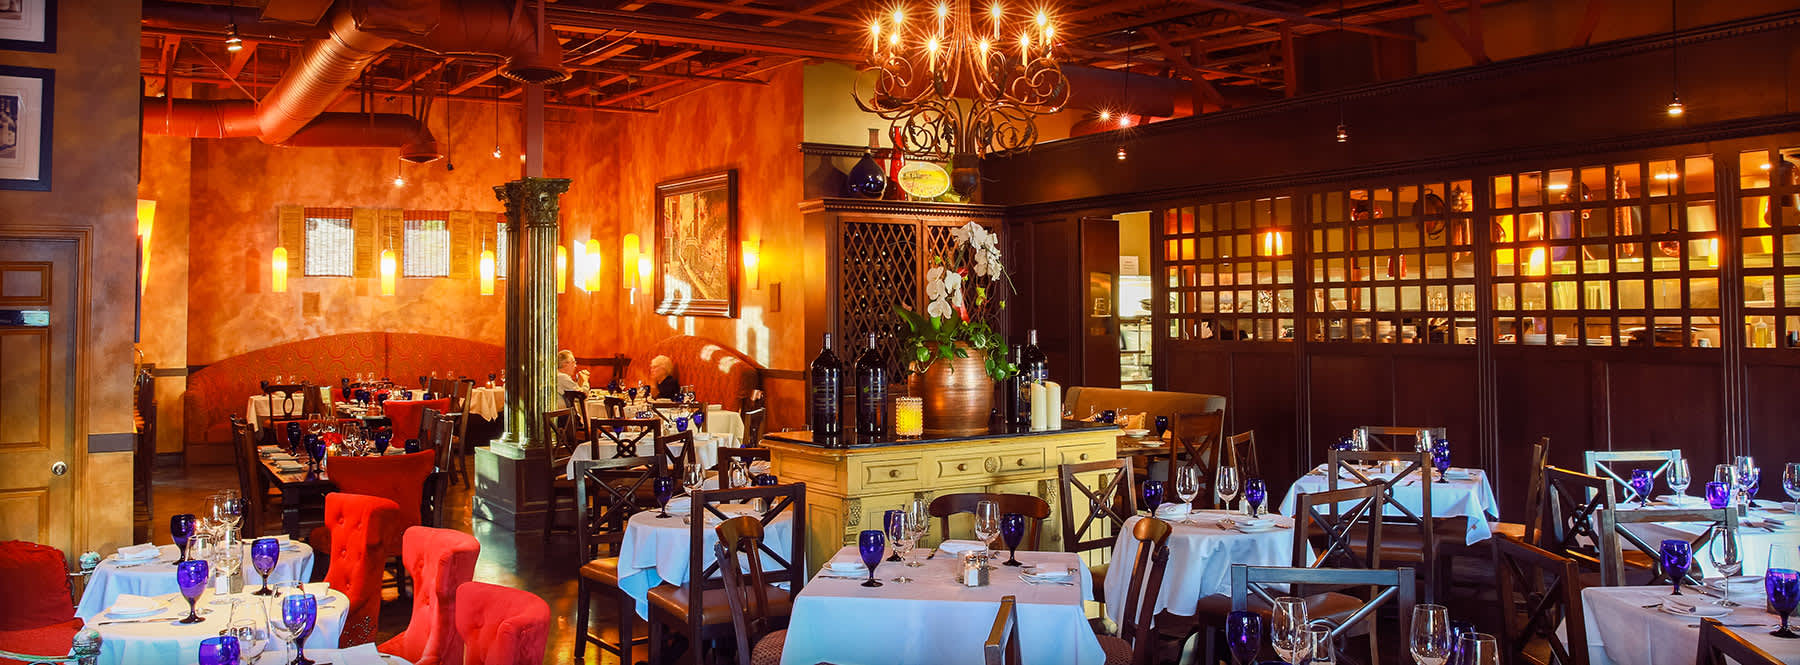 Private-Dining Experience at Cucina Venti Restaurant Mountain View